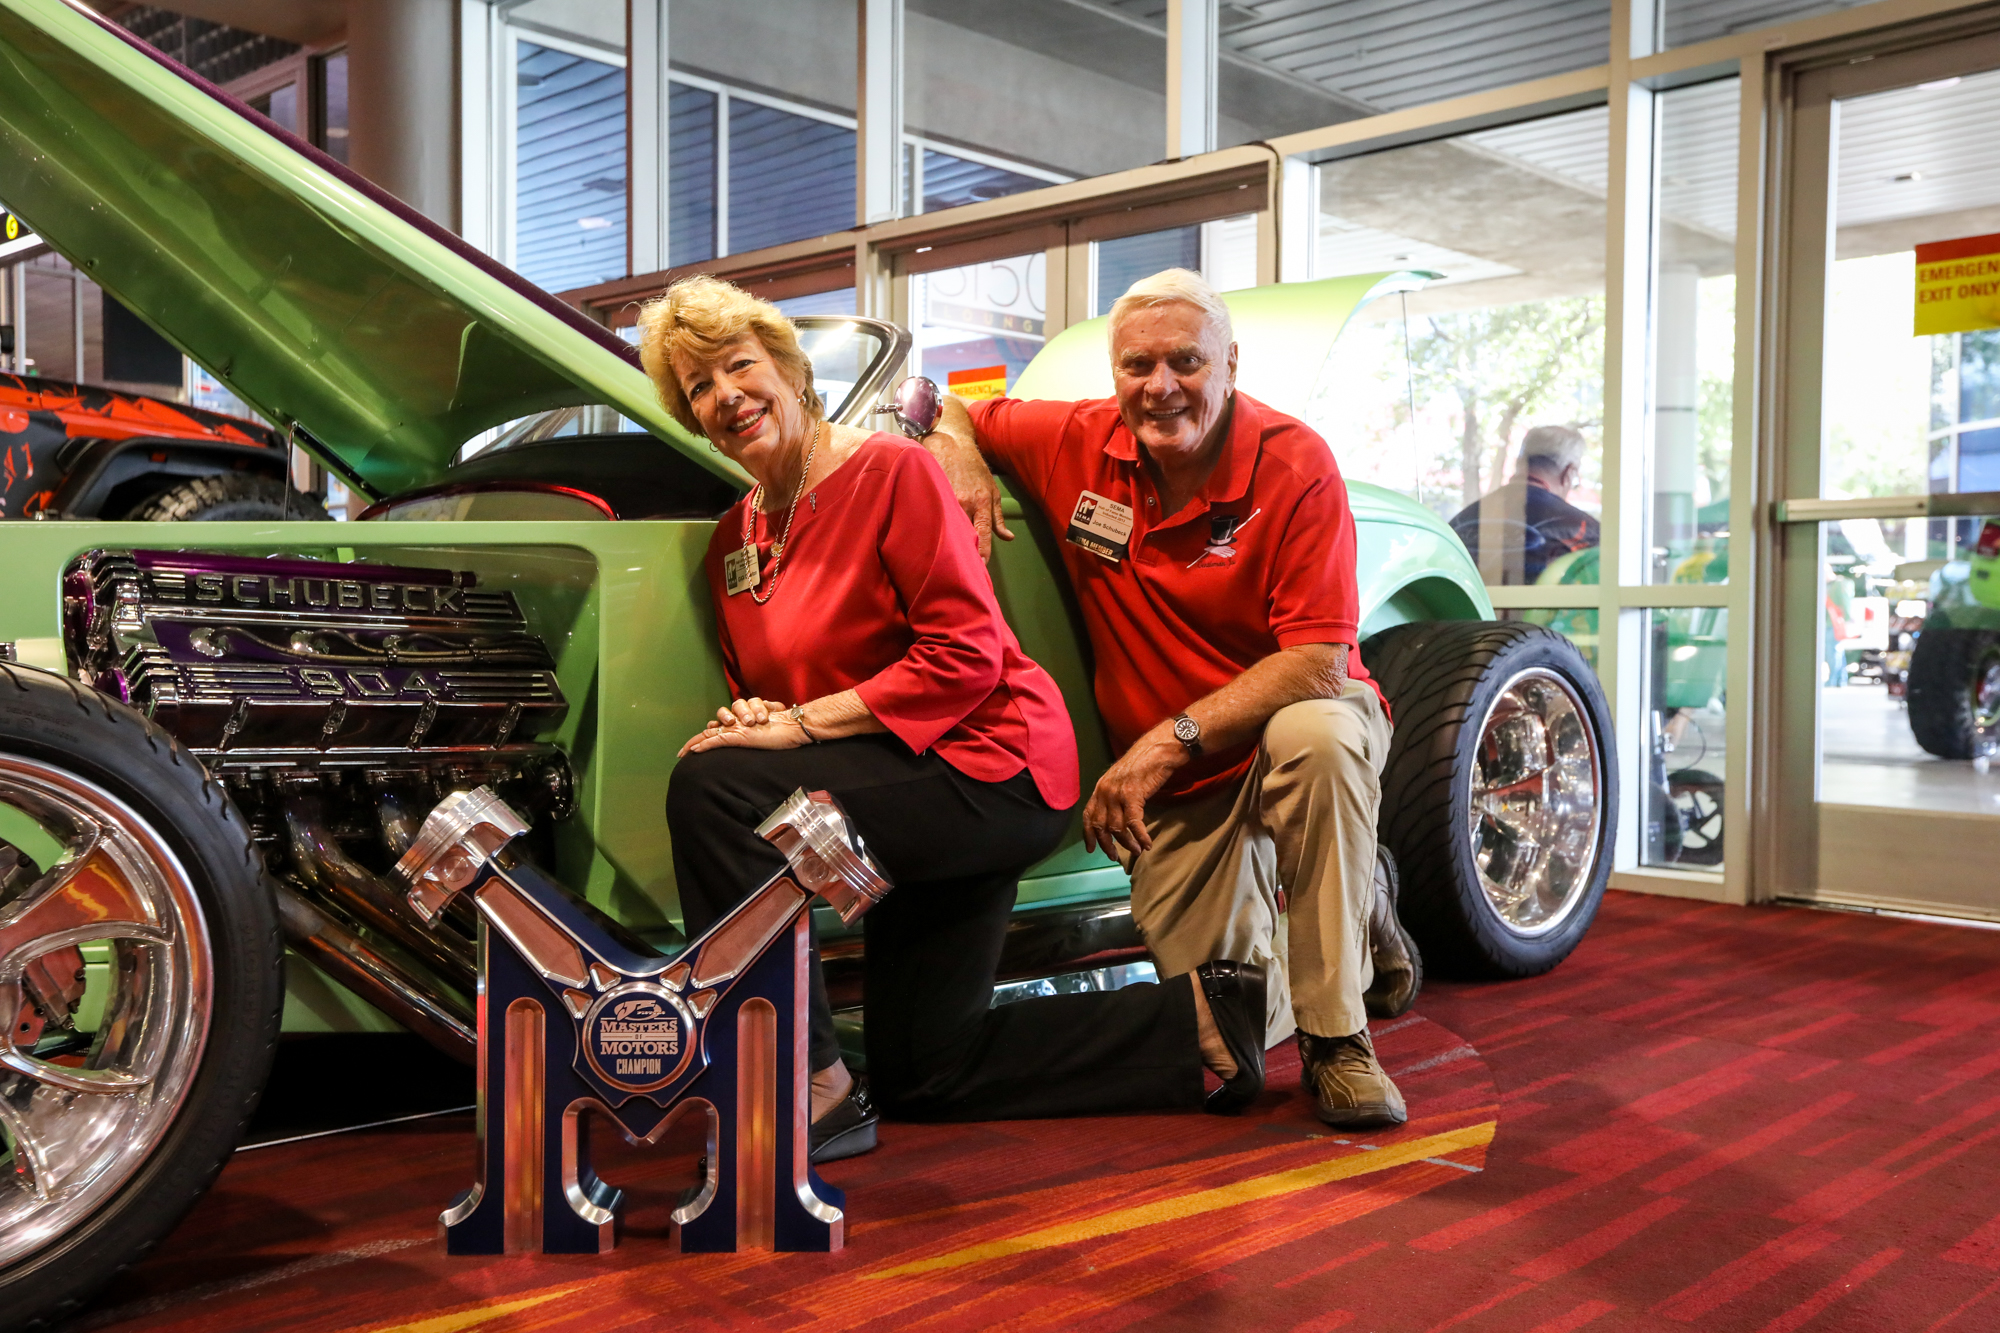 Joe Schubeck (right) with his quad-cam 904ci Hemi engine, winner of the Masters of Motors award by JE Pistons